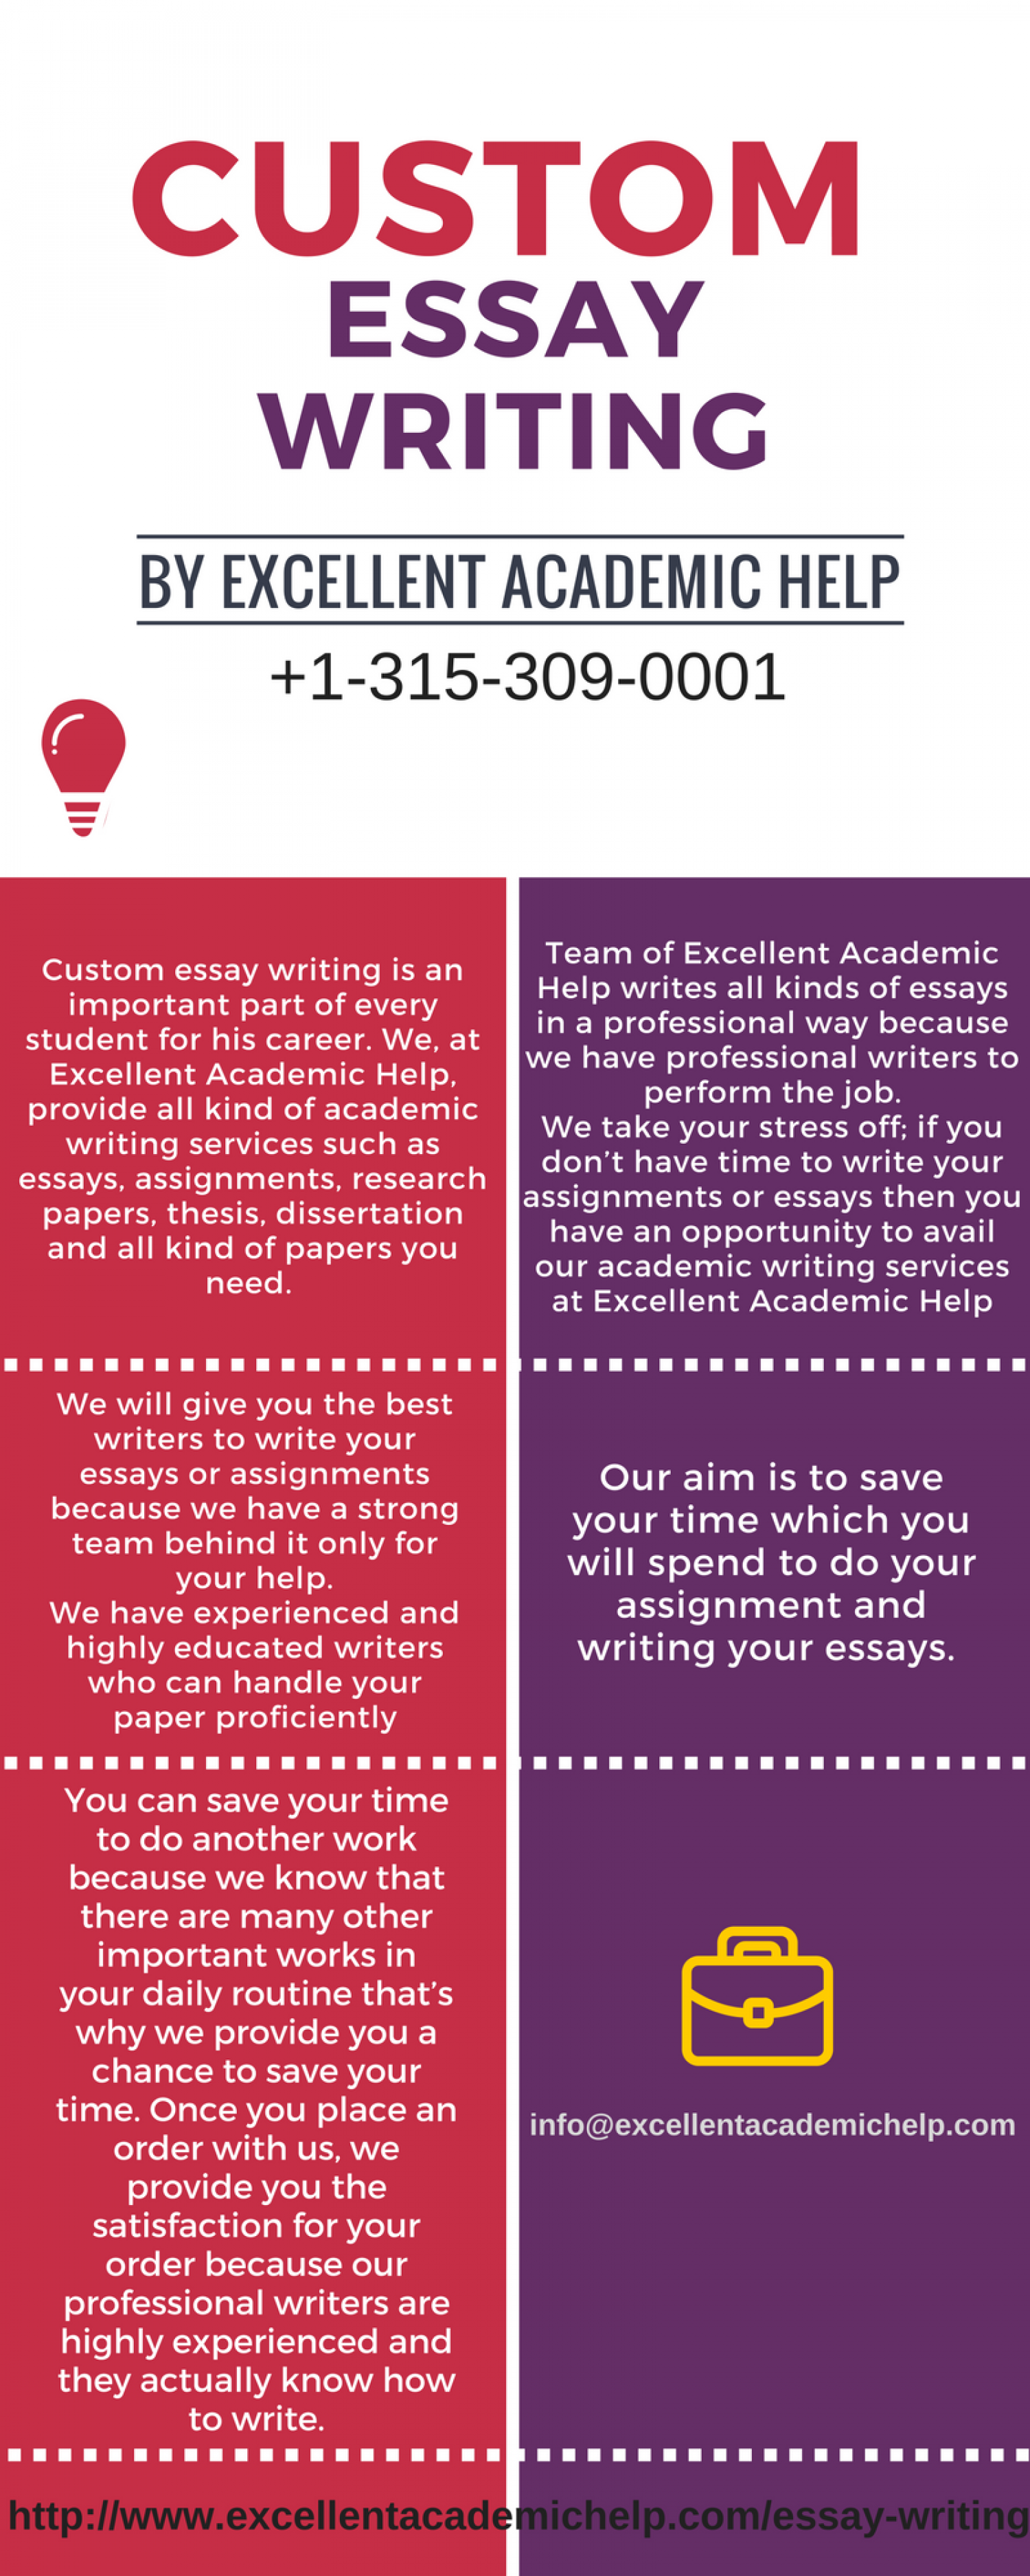 custom academic writing com favourite meal essay quot s gaining self respect essay installed on the custom academic writing site include plagiarism check allows us to check your